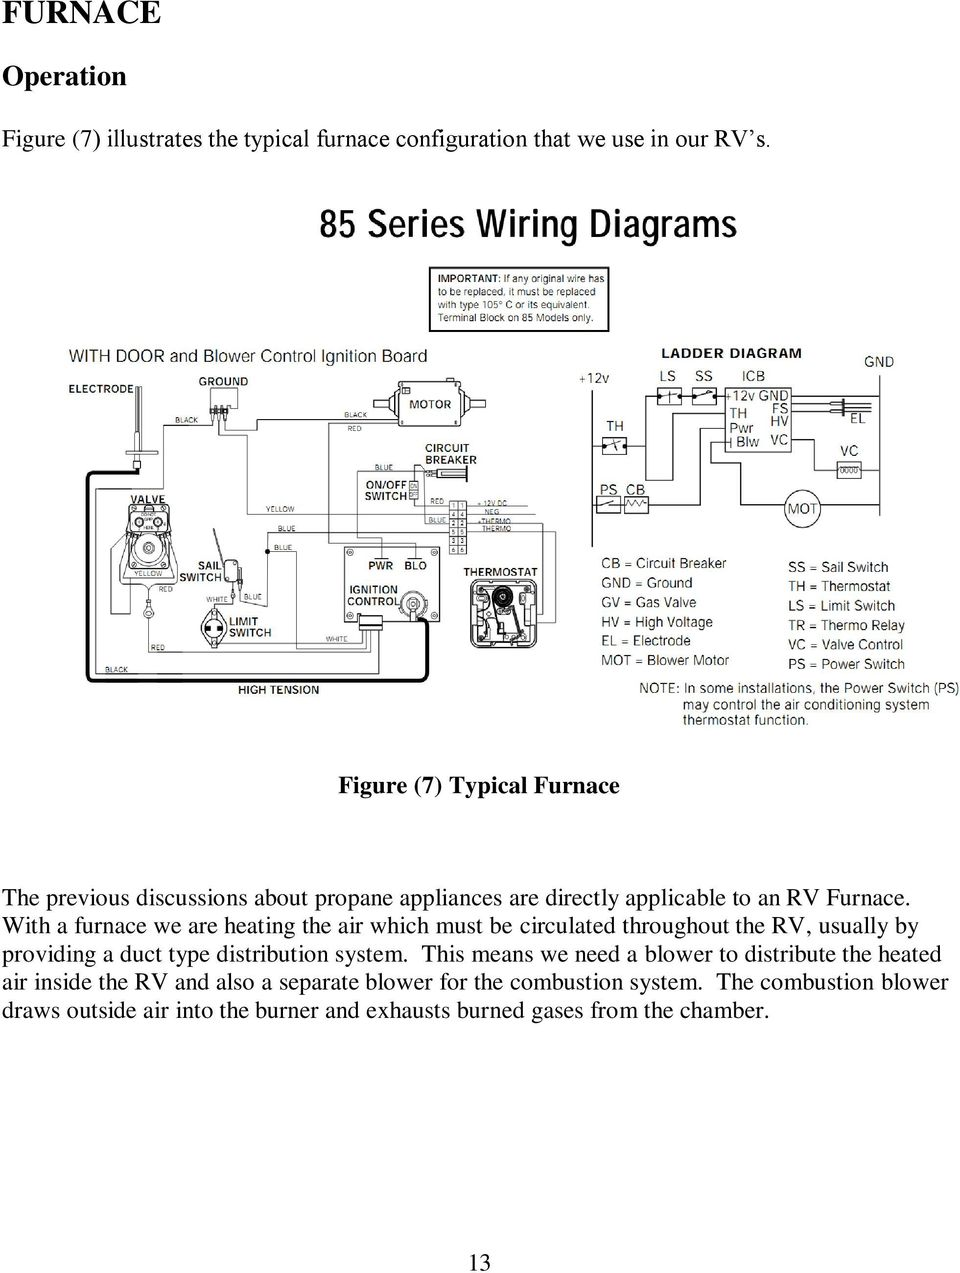 The Care And Feeding Of Your Rv Iil Pdf 12vdc Limit Switch Wiring Diagrams With A Furnace We Are Heating Air Which Must Be Circulated Throughout